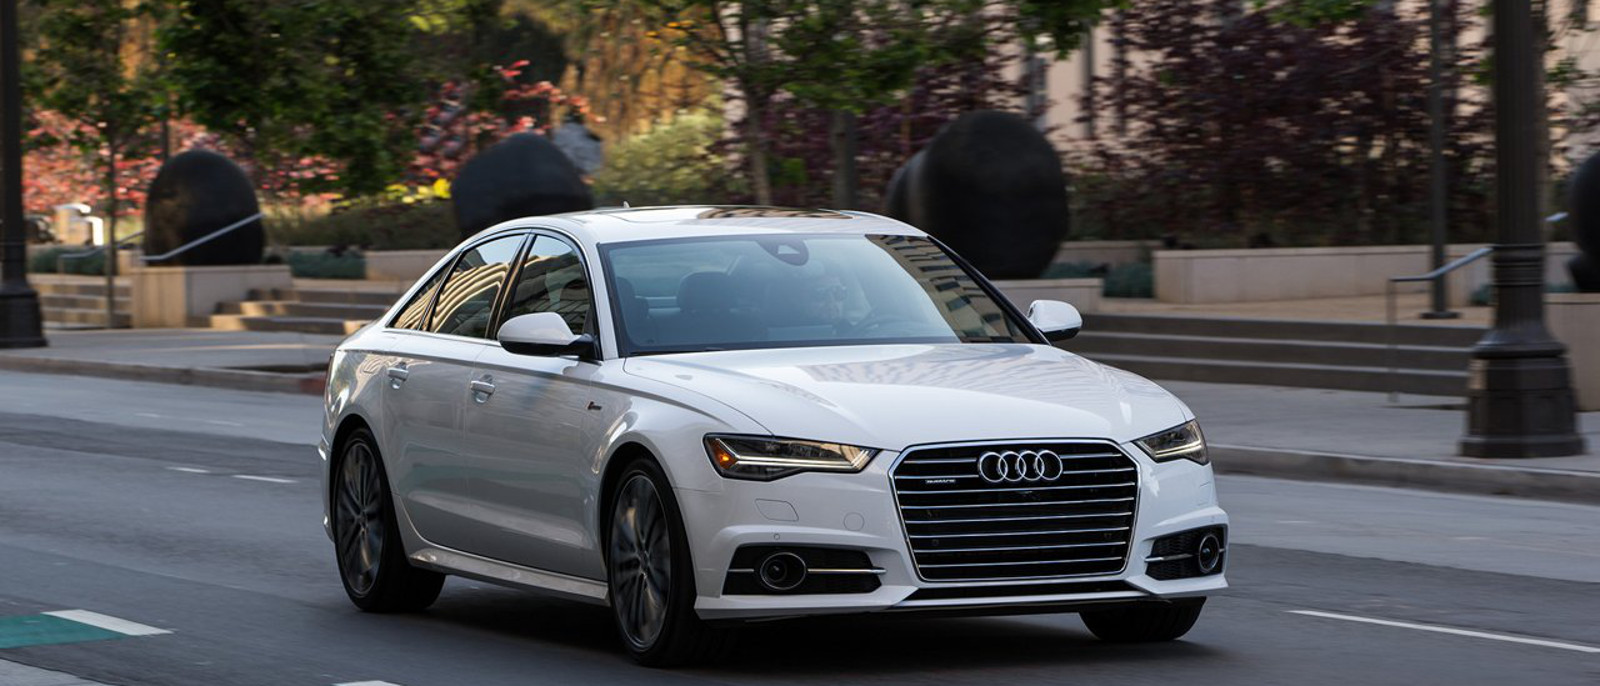 2016 Audi A6 on road